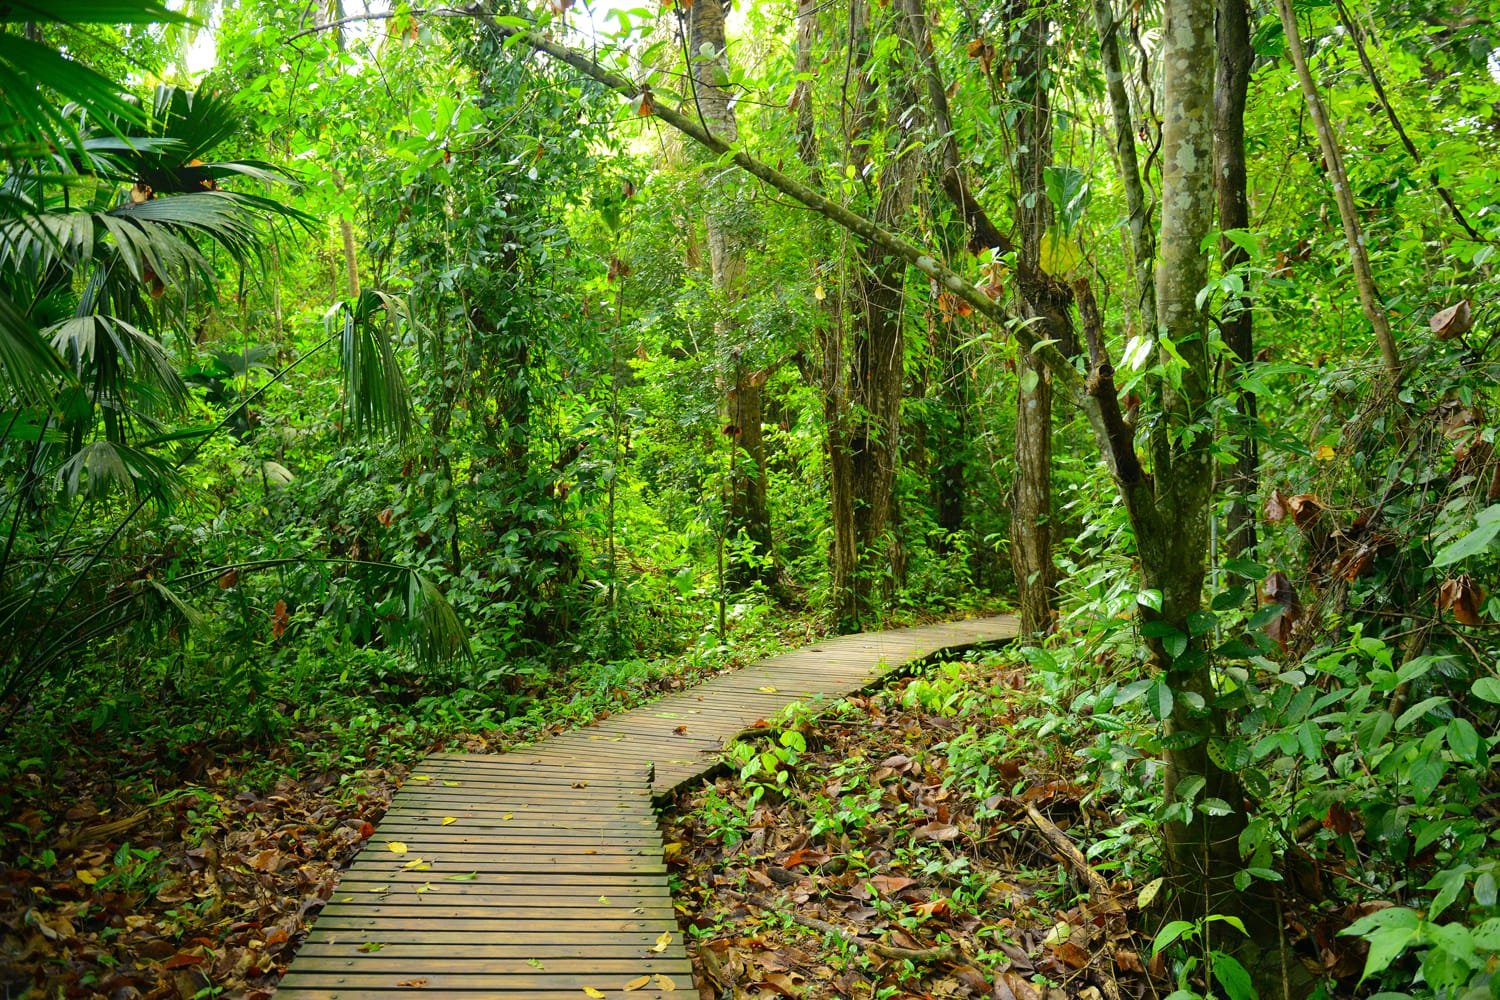 The walking path through the jungle in Tayrona National Park, Colombia